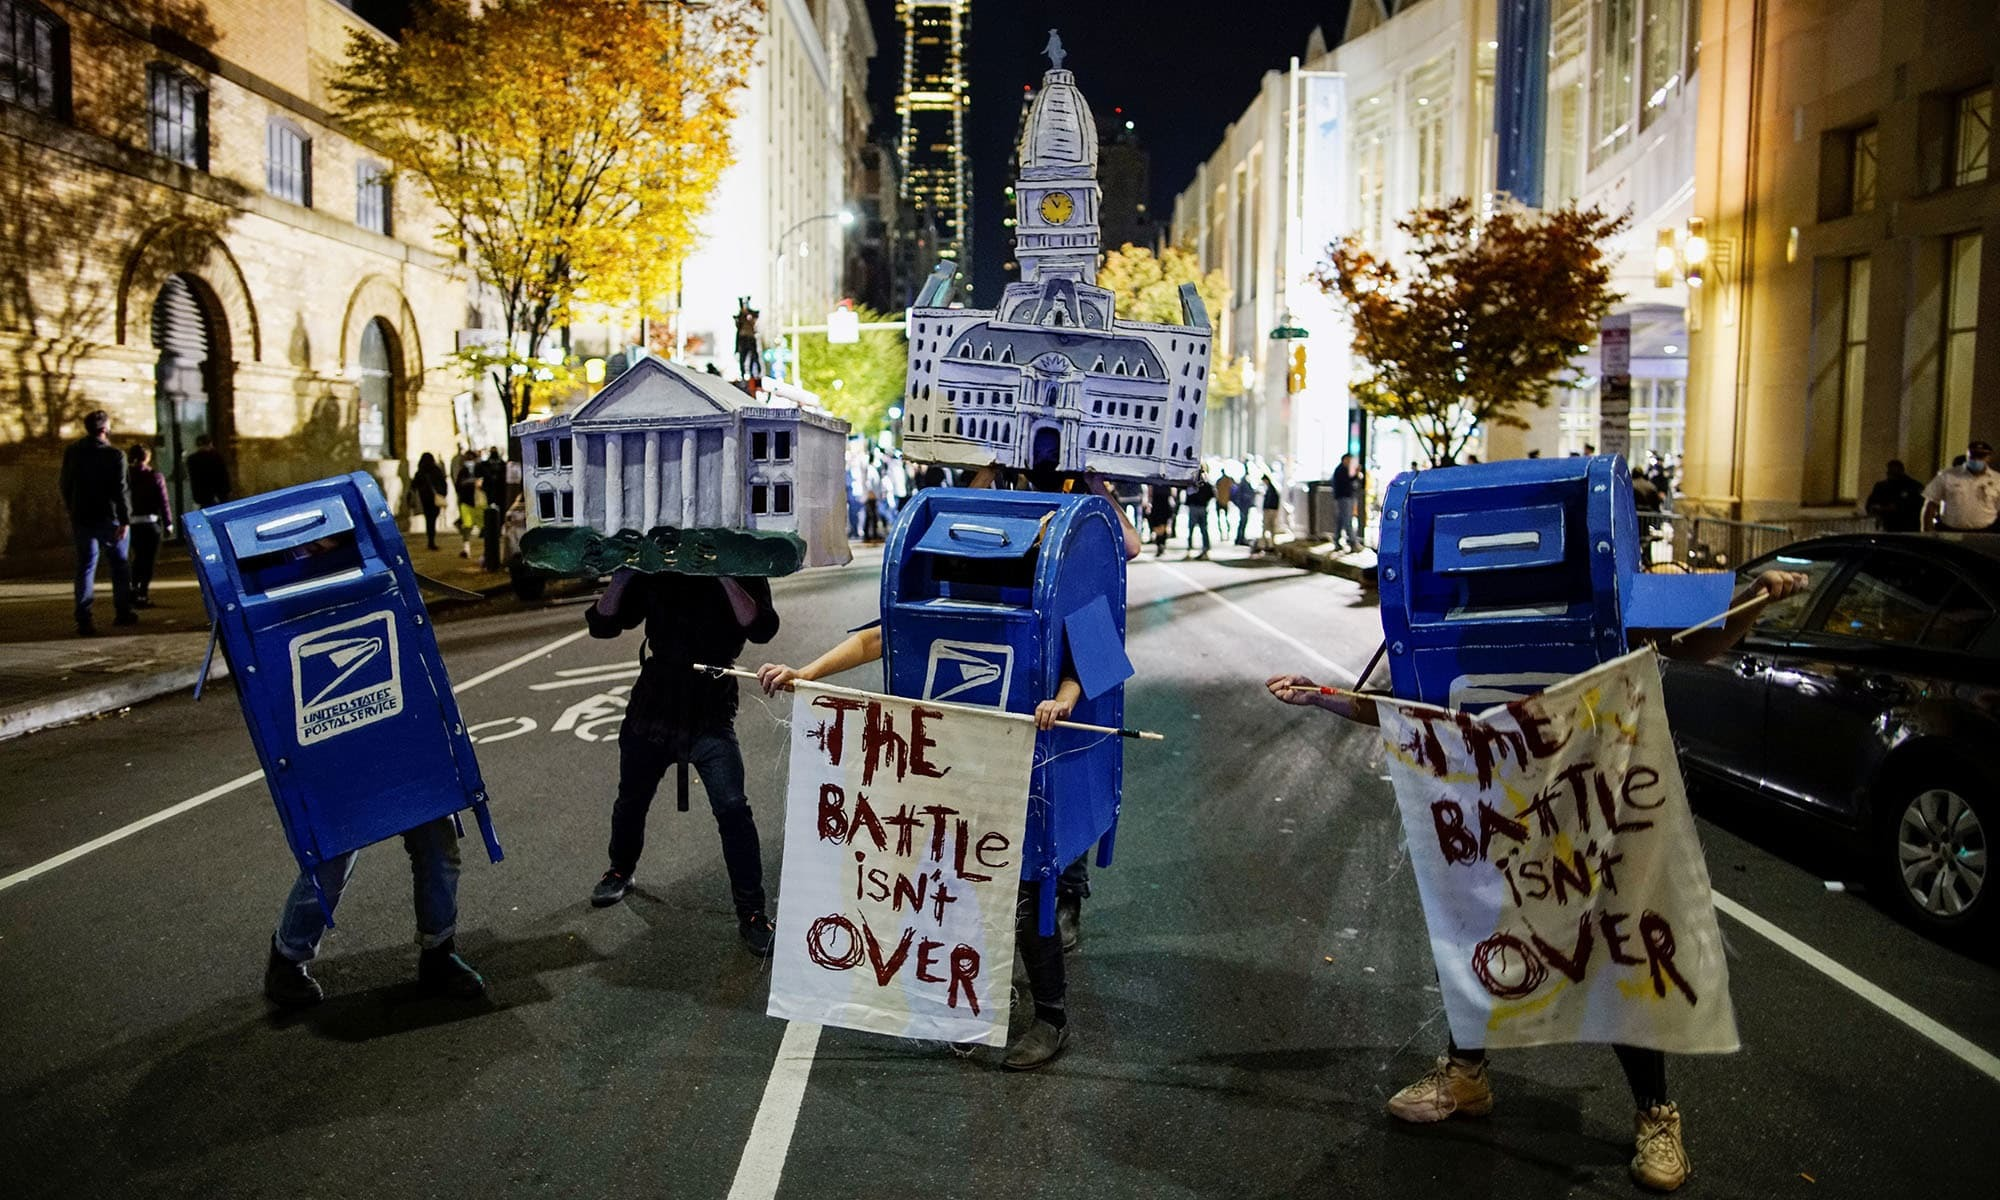 Activists dressed as the White House, Philadelphia City Hall and the United States Postal Service (USPS) mailboxes stand on a street two days after the 2020 US presidential election in Philadelphia, Pennsylvania, US on November 5, 2020. — Reuters/File